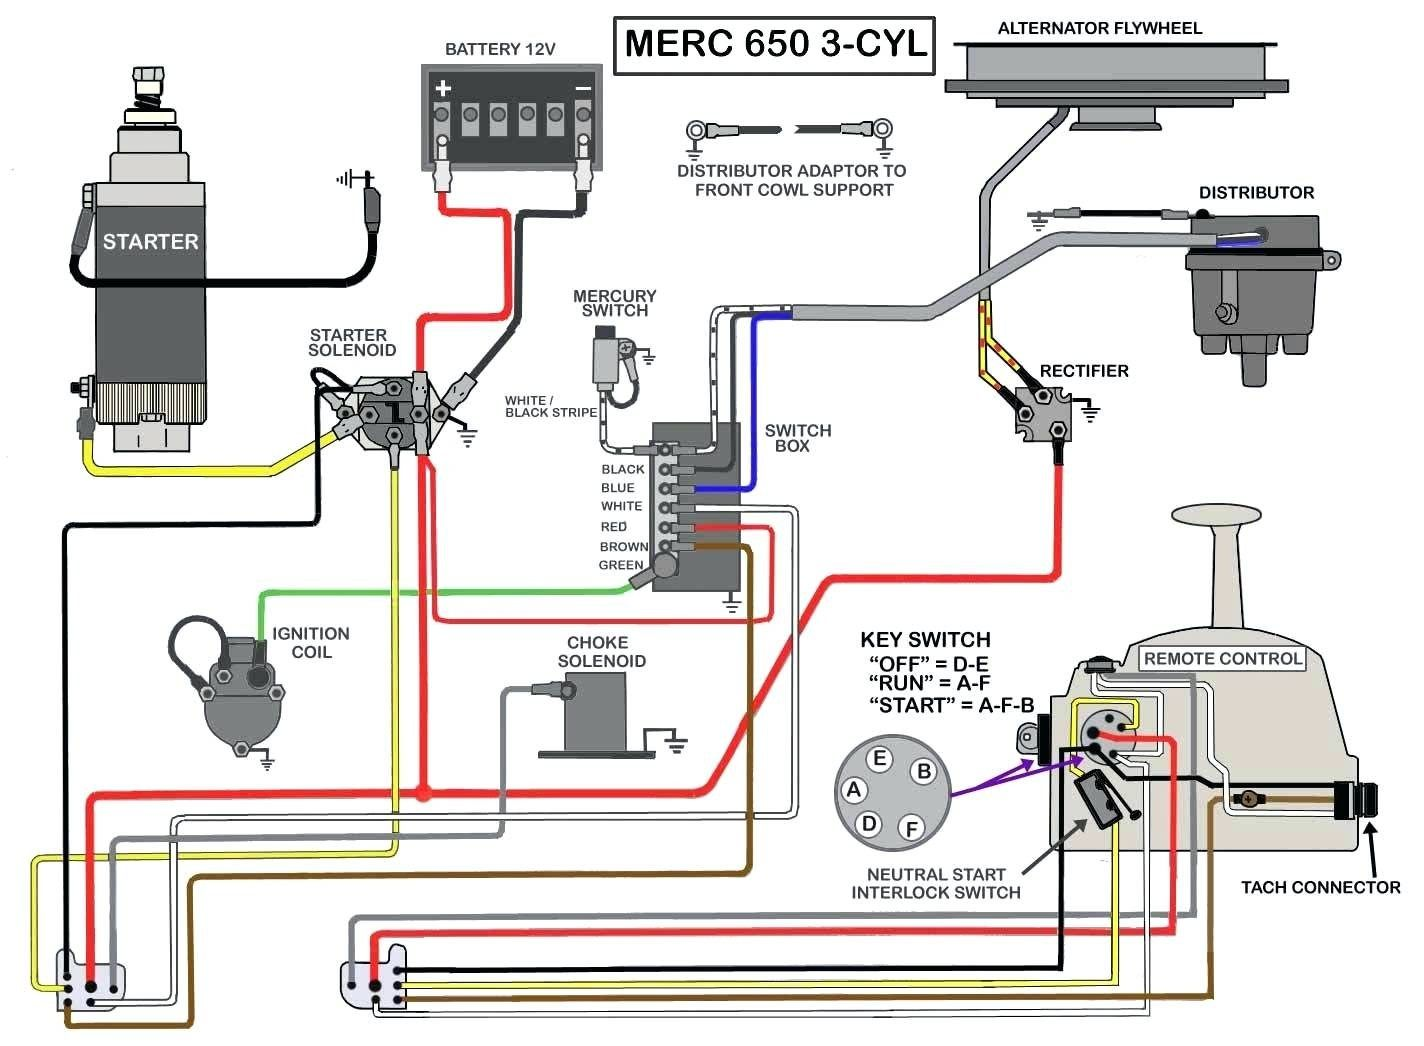 Quicksilver Throttle Control Wiring Diagram Wiring Diagram Diagram Electrical Wiring Diagram Electrical Diagram